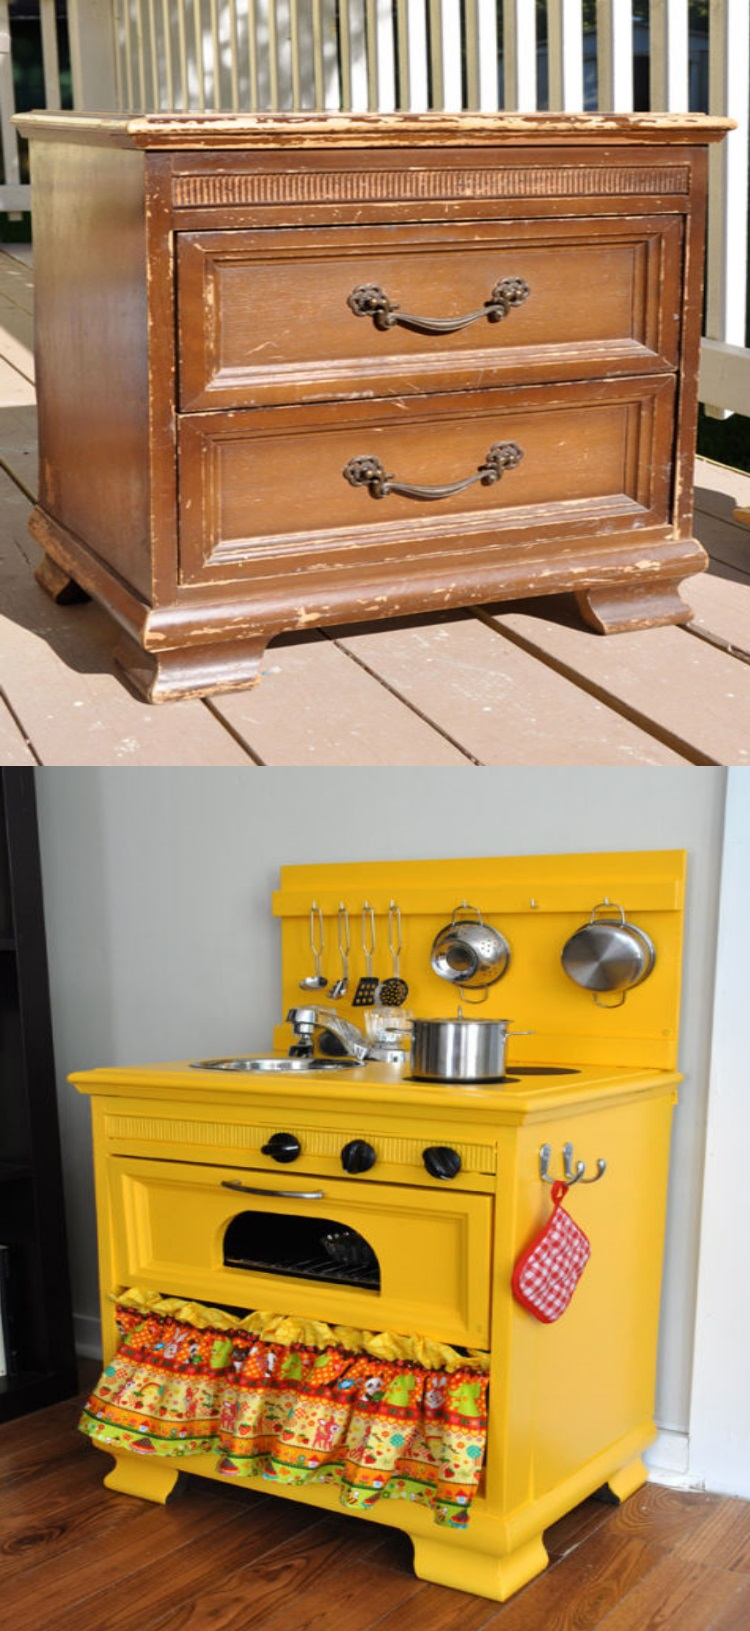 diy play kitchen for kid from old nightstand